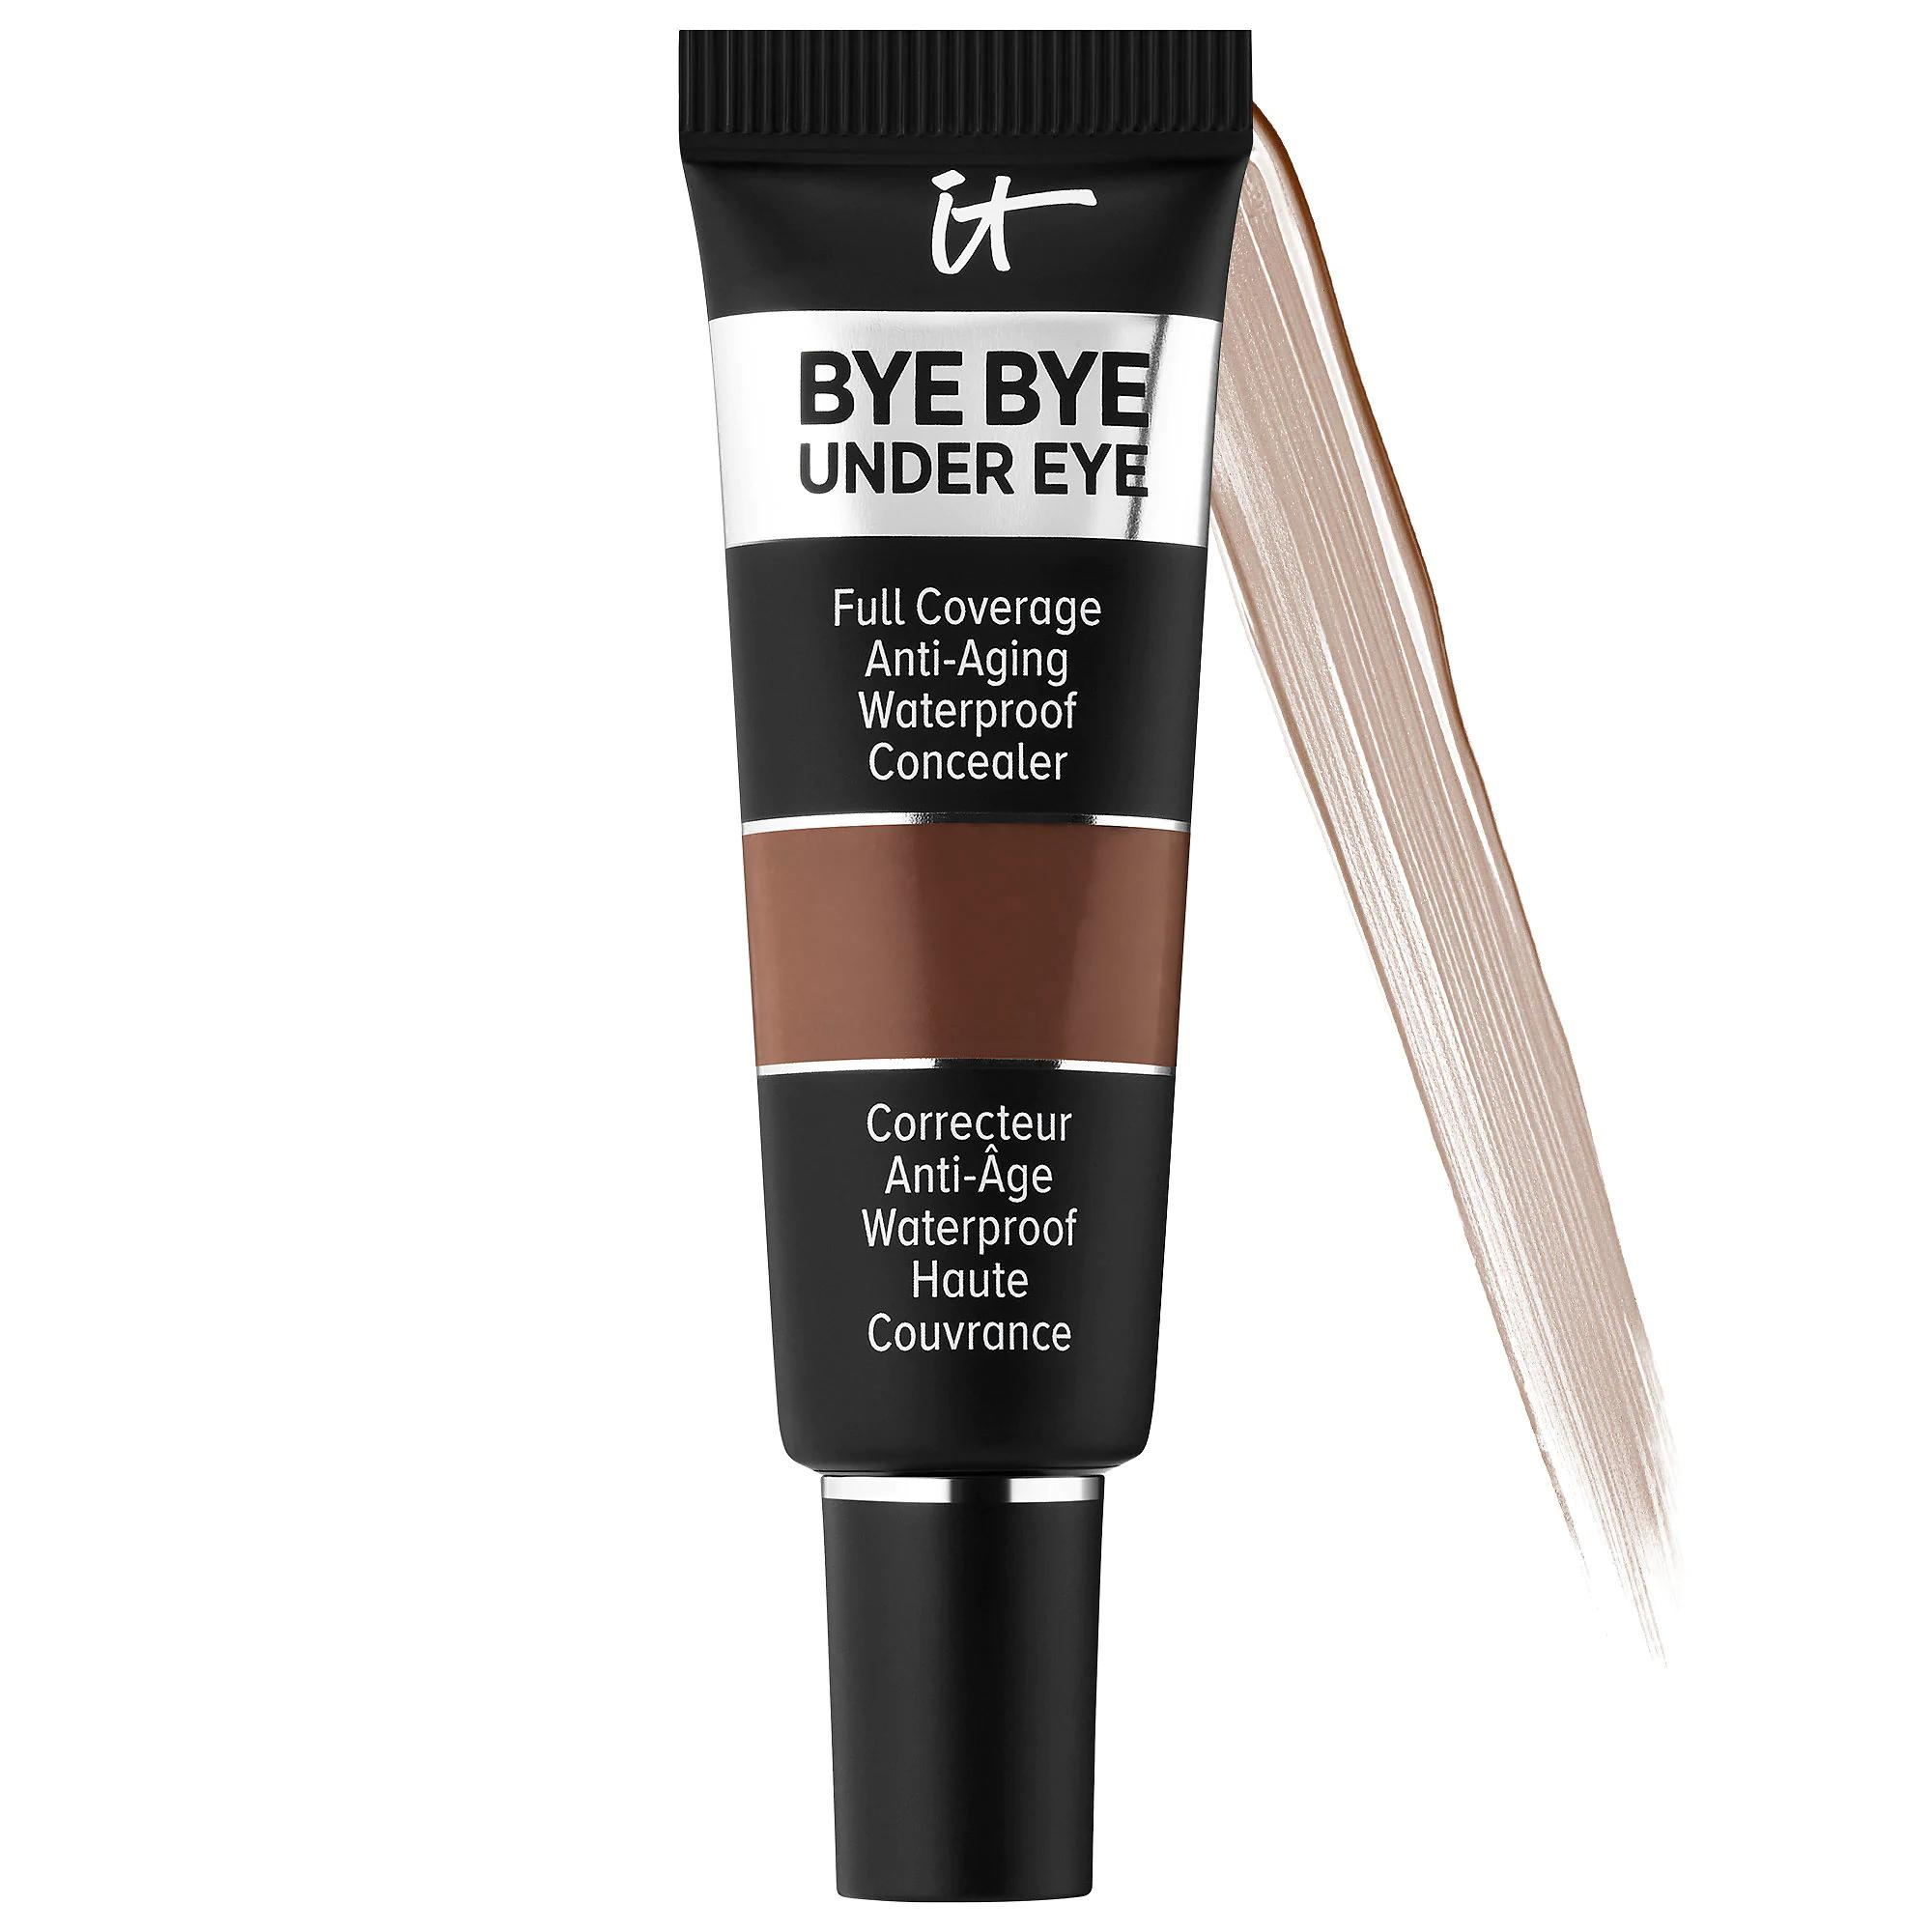 IT Cosmetics Bye Bye Under Eye Full Coverage Concealer Deep Mocha 44.5